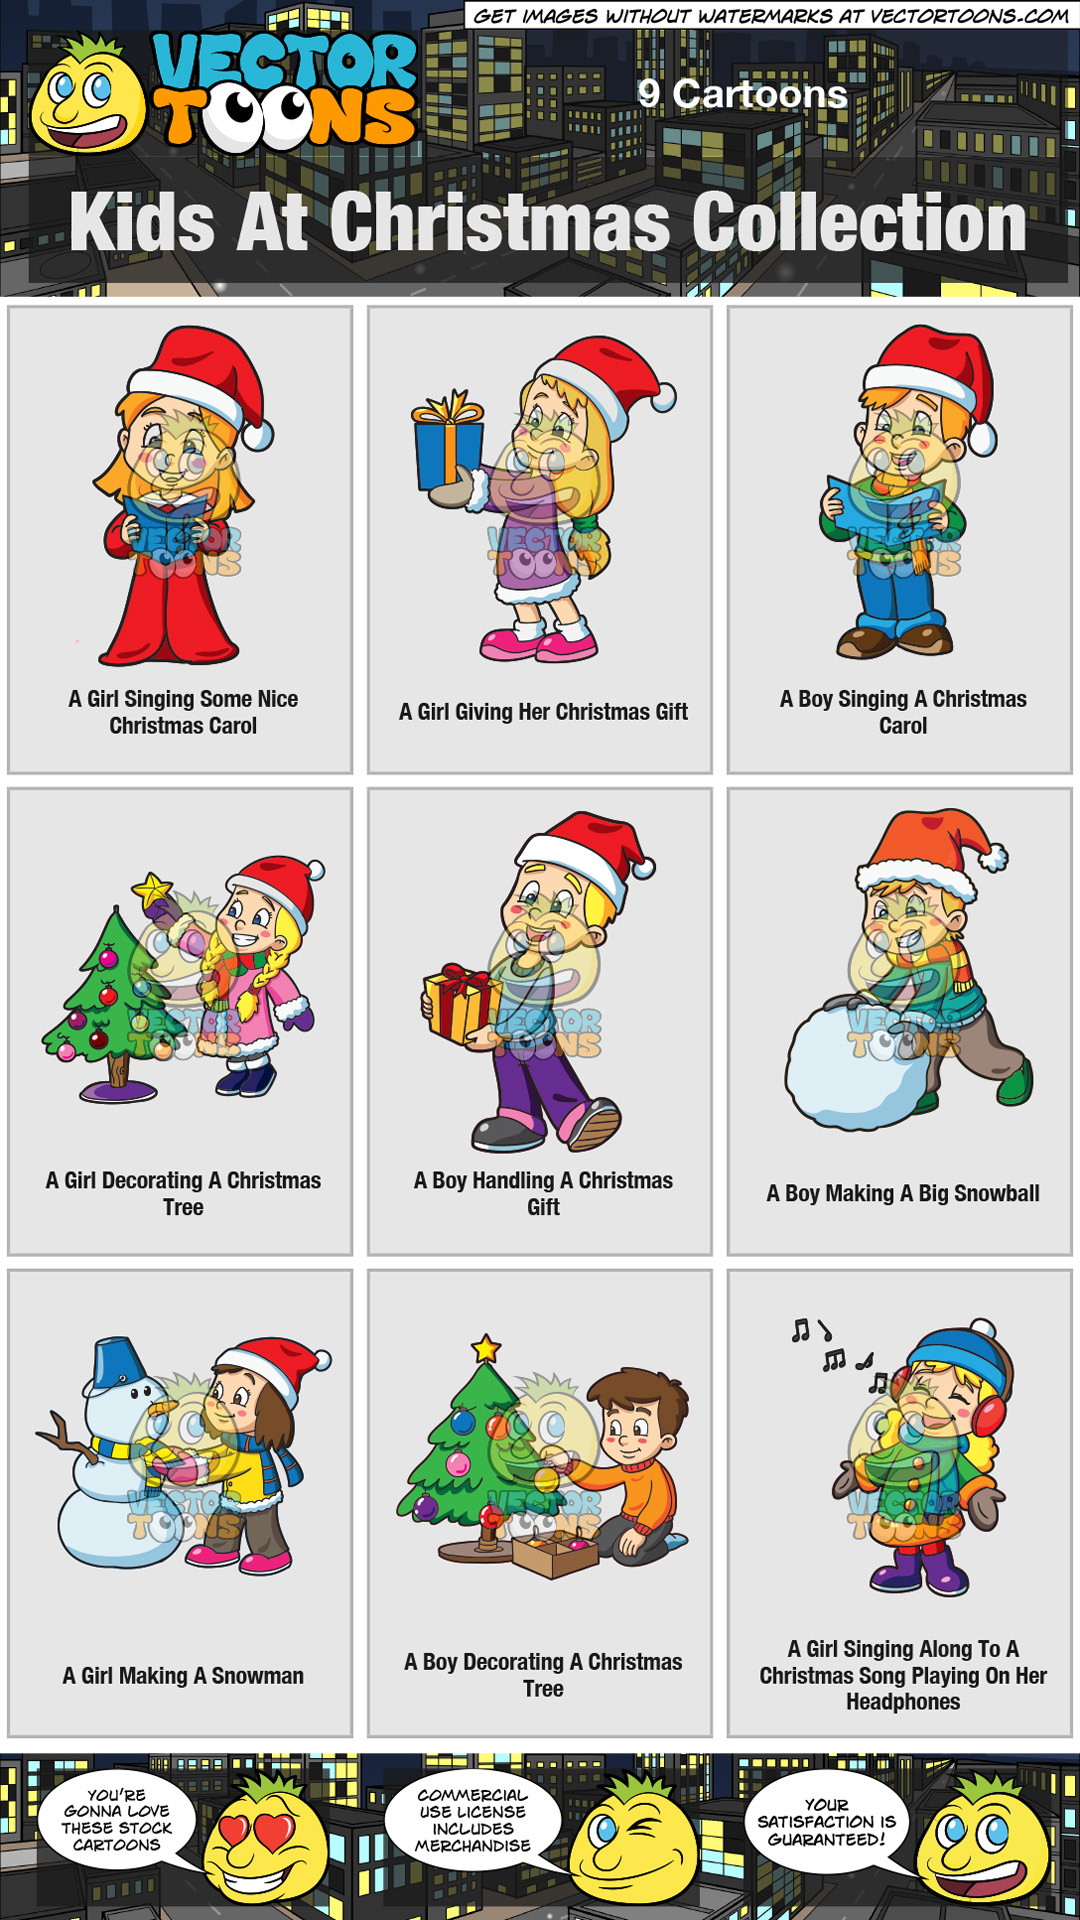 Kids At Christmas Collection – Clipart by Vector Toons